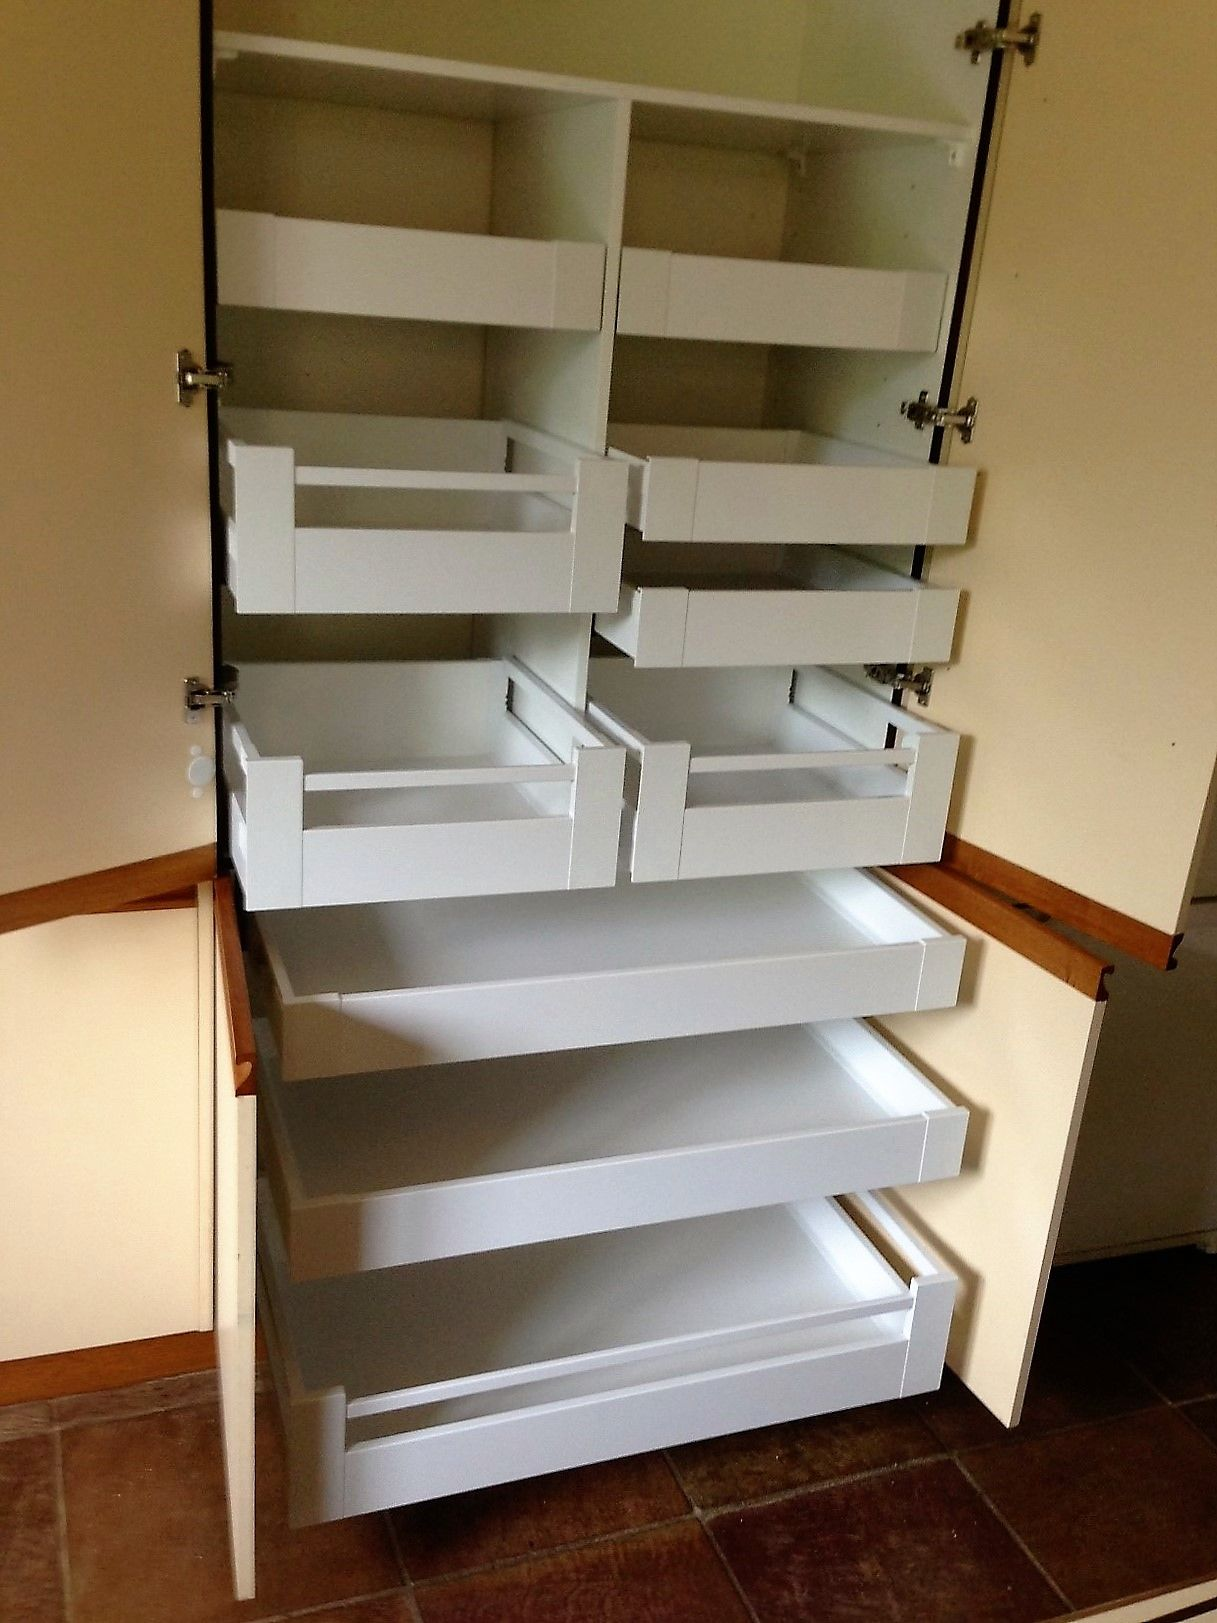 Pantry Drawer Systems By Inadrawer Custom Made To Any Size Blum Internal Drawer Systems White Kitchen Accessories Kitchen Pantry Design Home Decor Kitchen